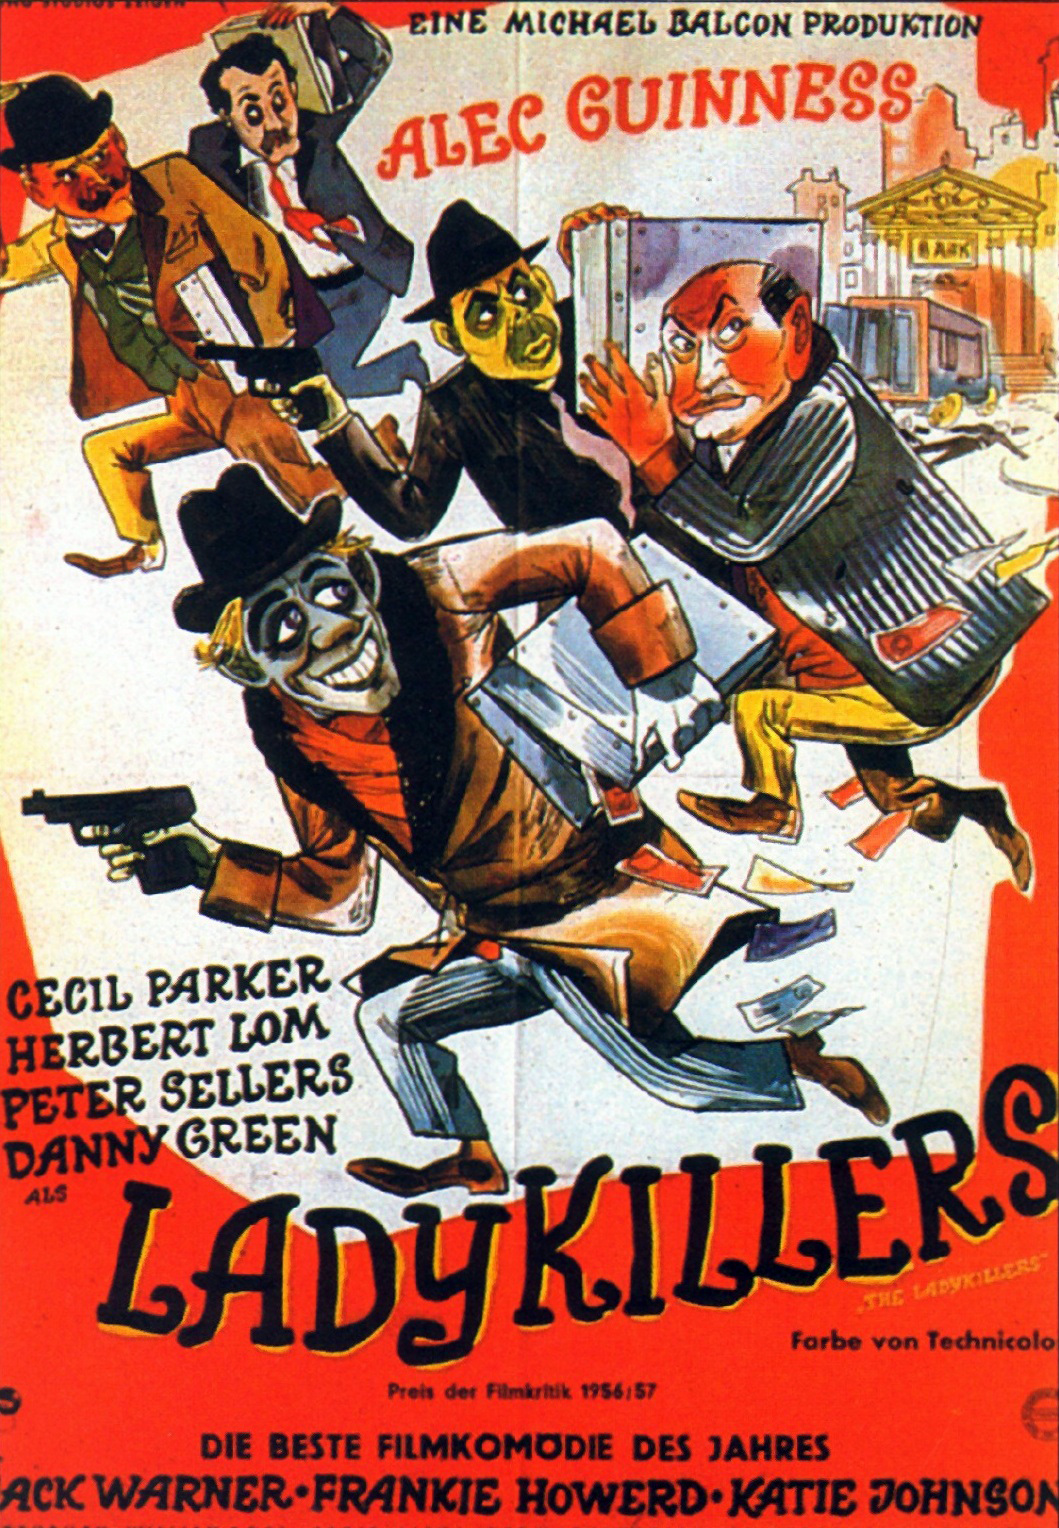 The Ladykillers - Introducing The Ladykillers